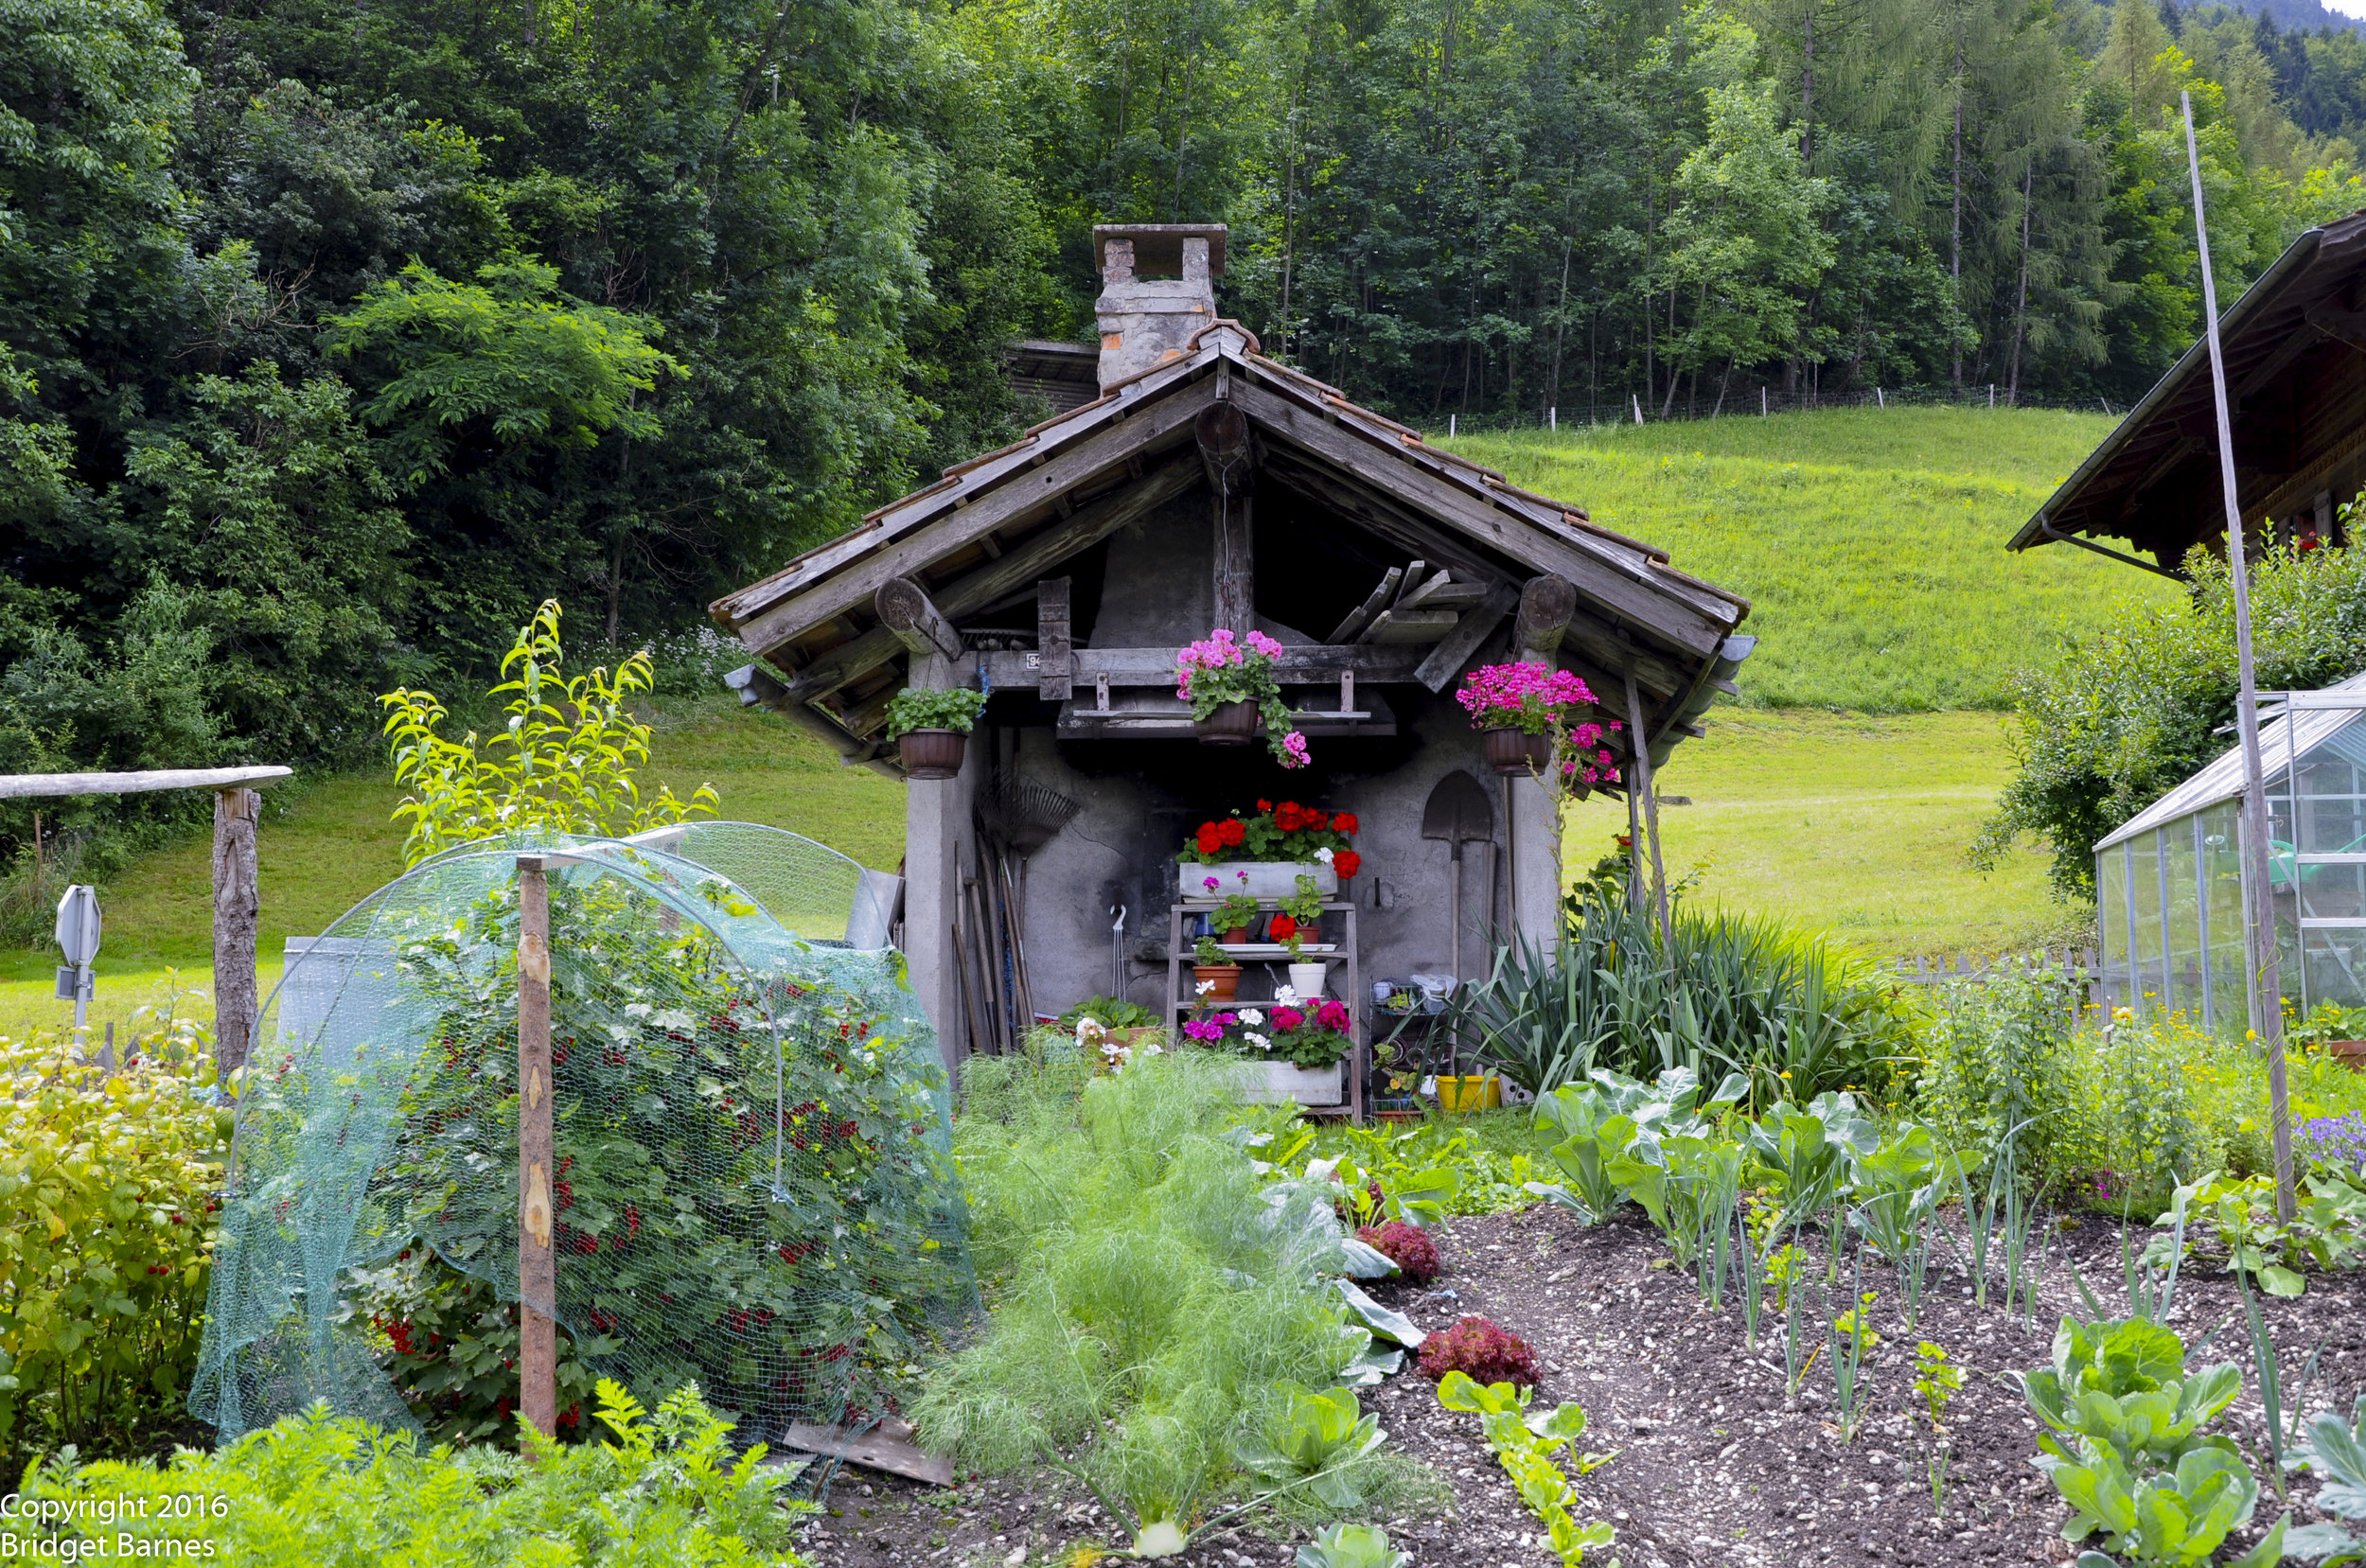 Garden shed in Iseltwald